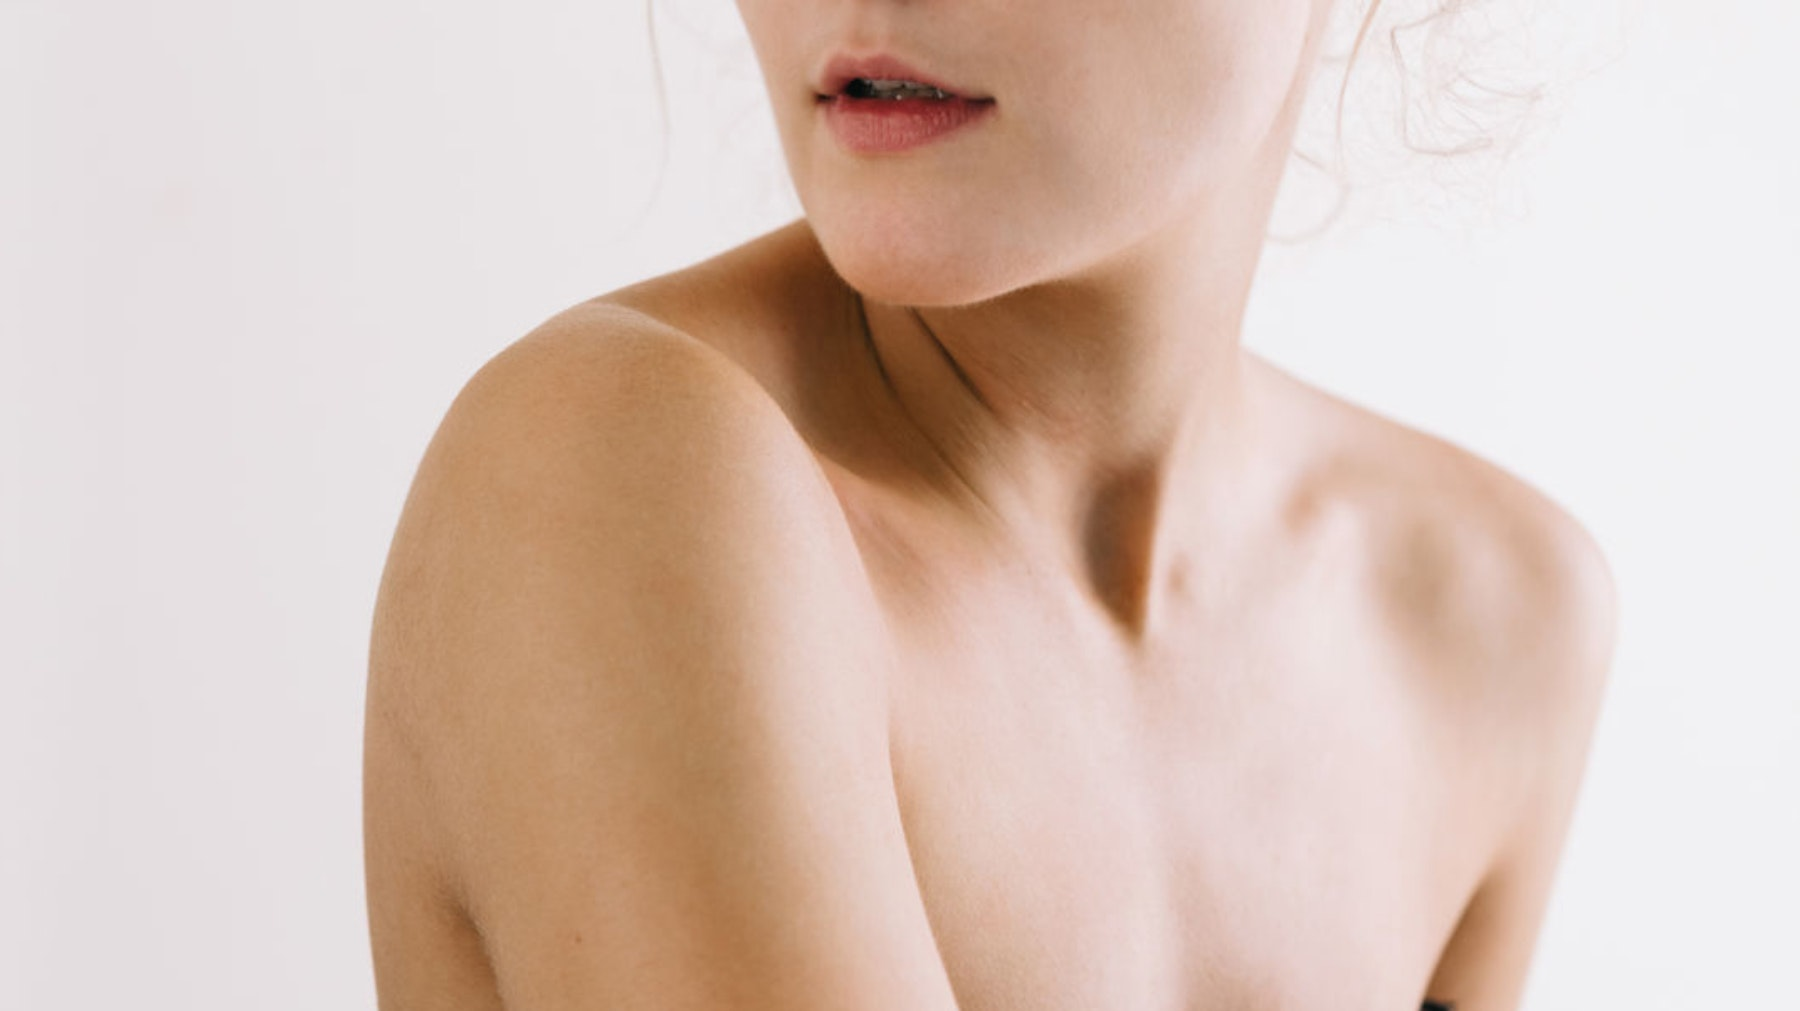 Ask a Derm: Does This Spot Look Like Skin Cancer?